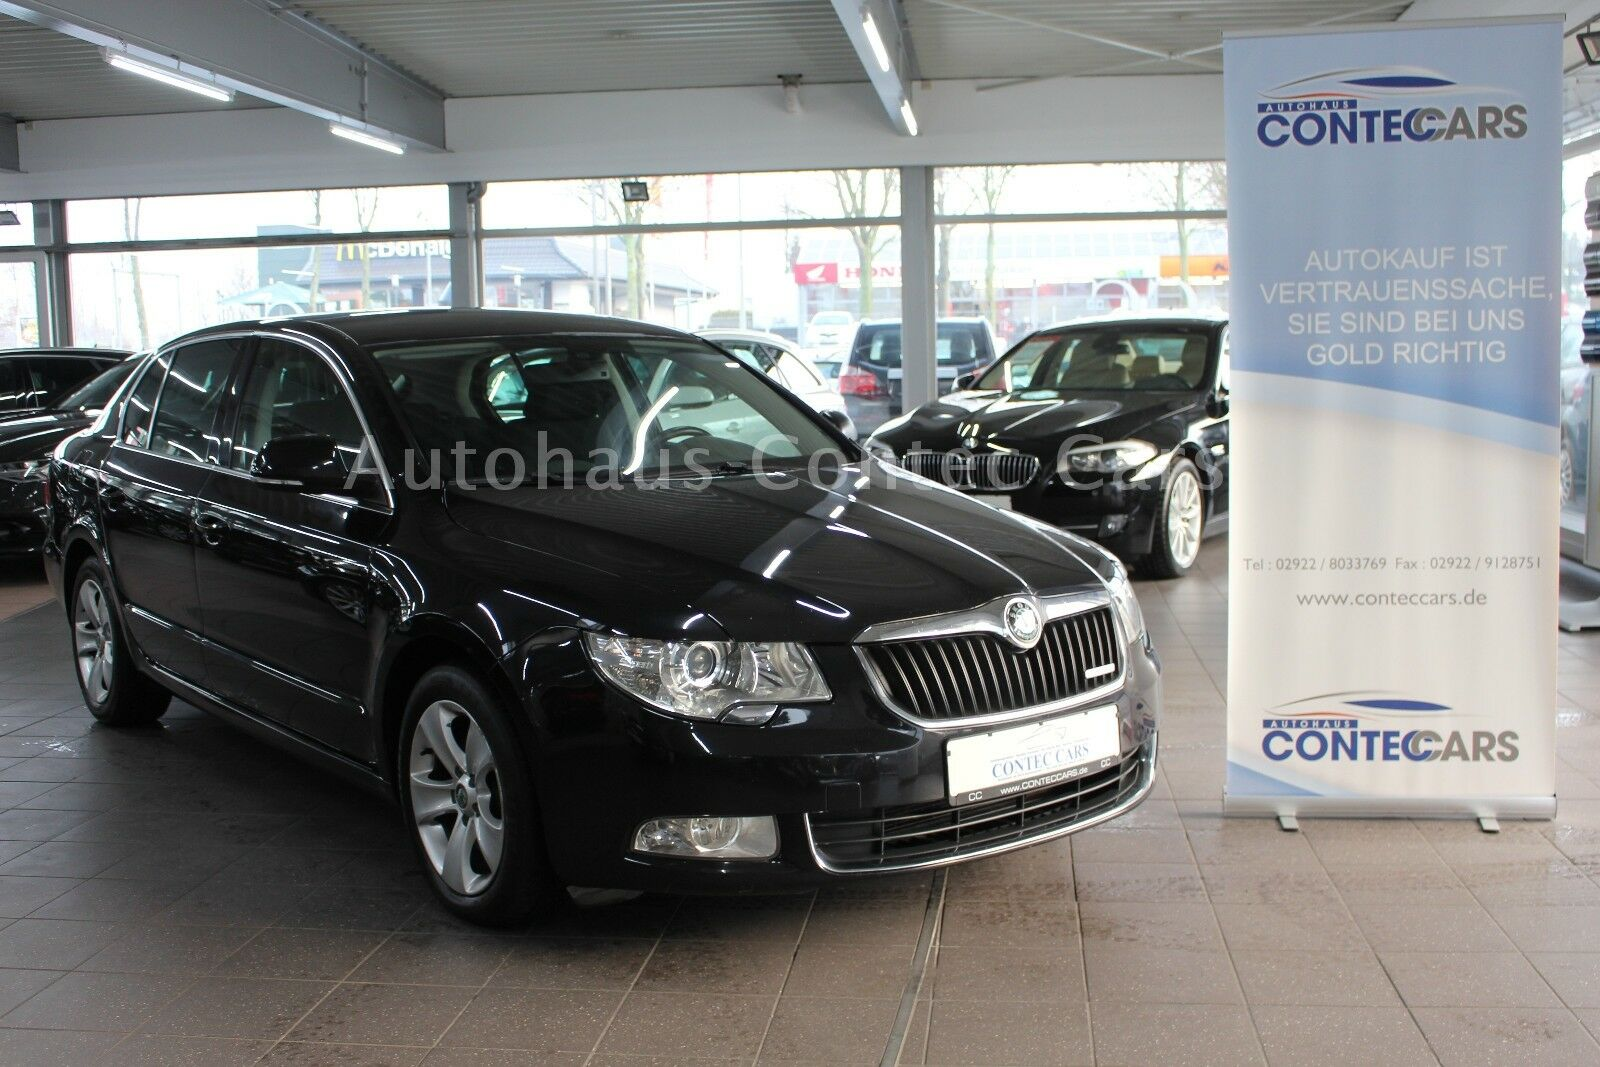 SKODA Superb 1.6 TDI Greenline // Ahk // Navi